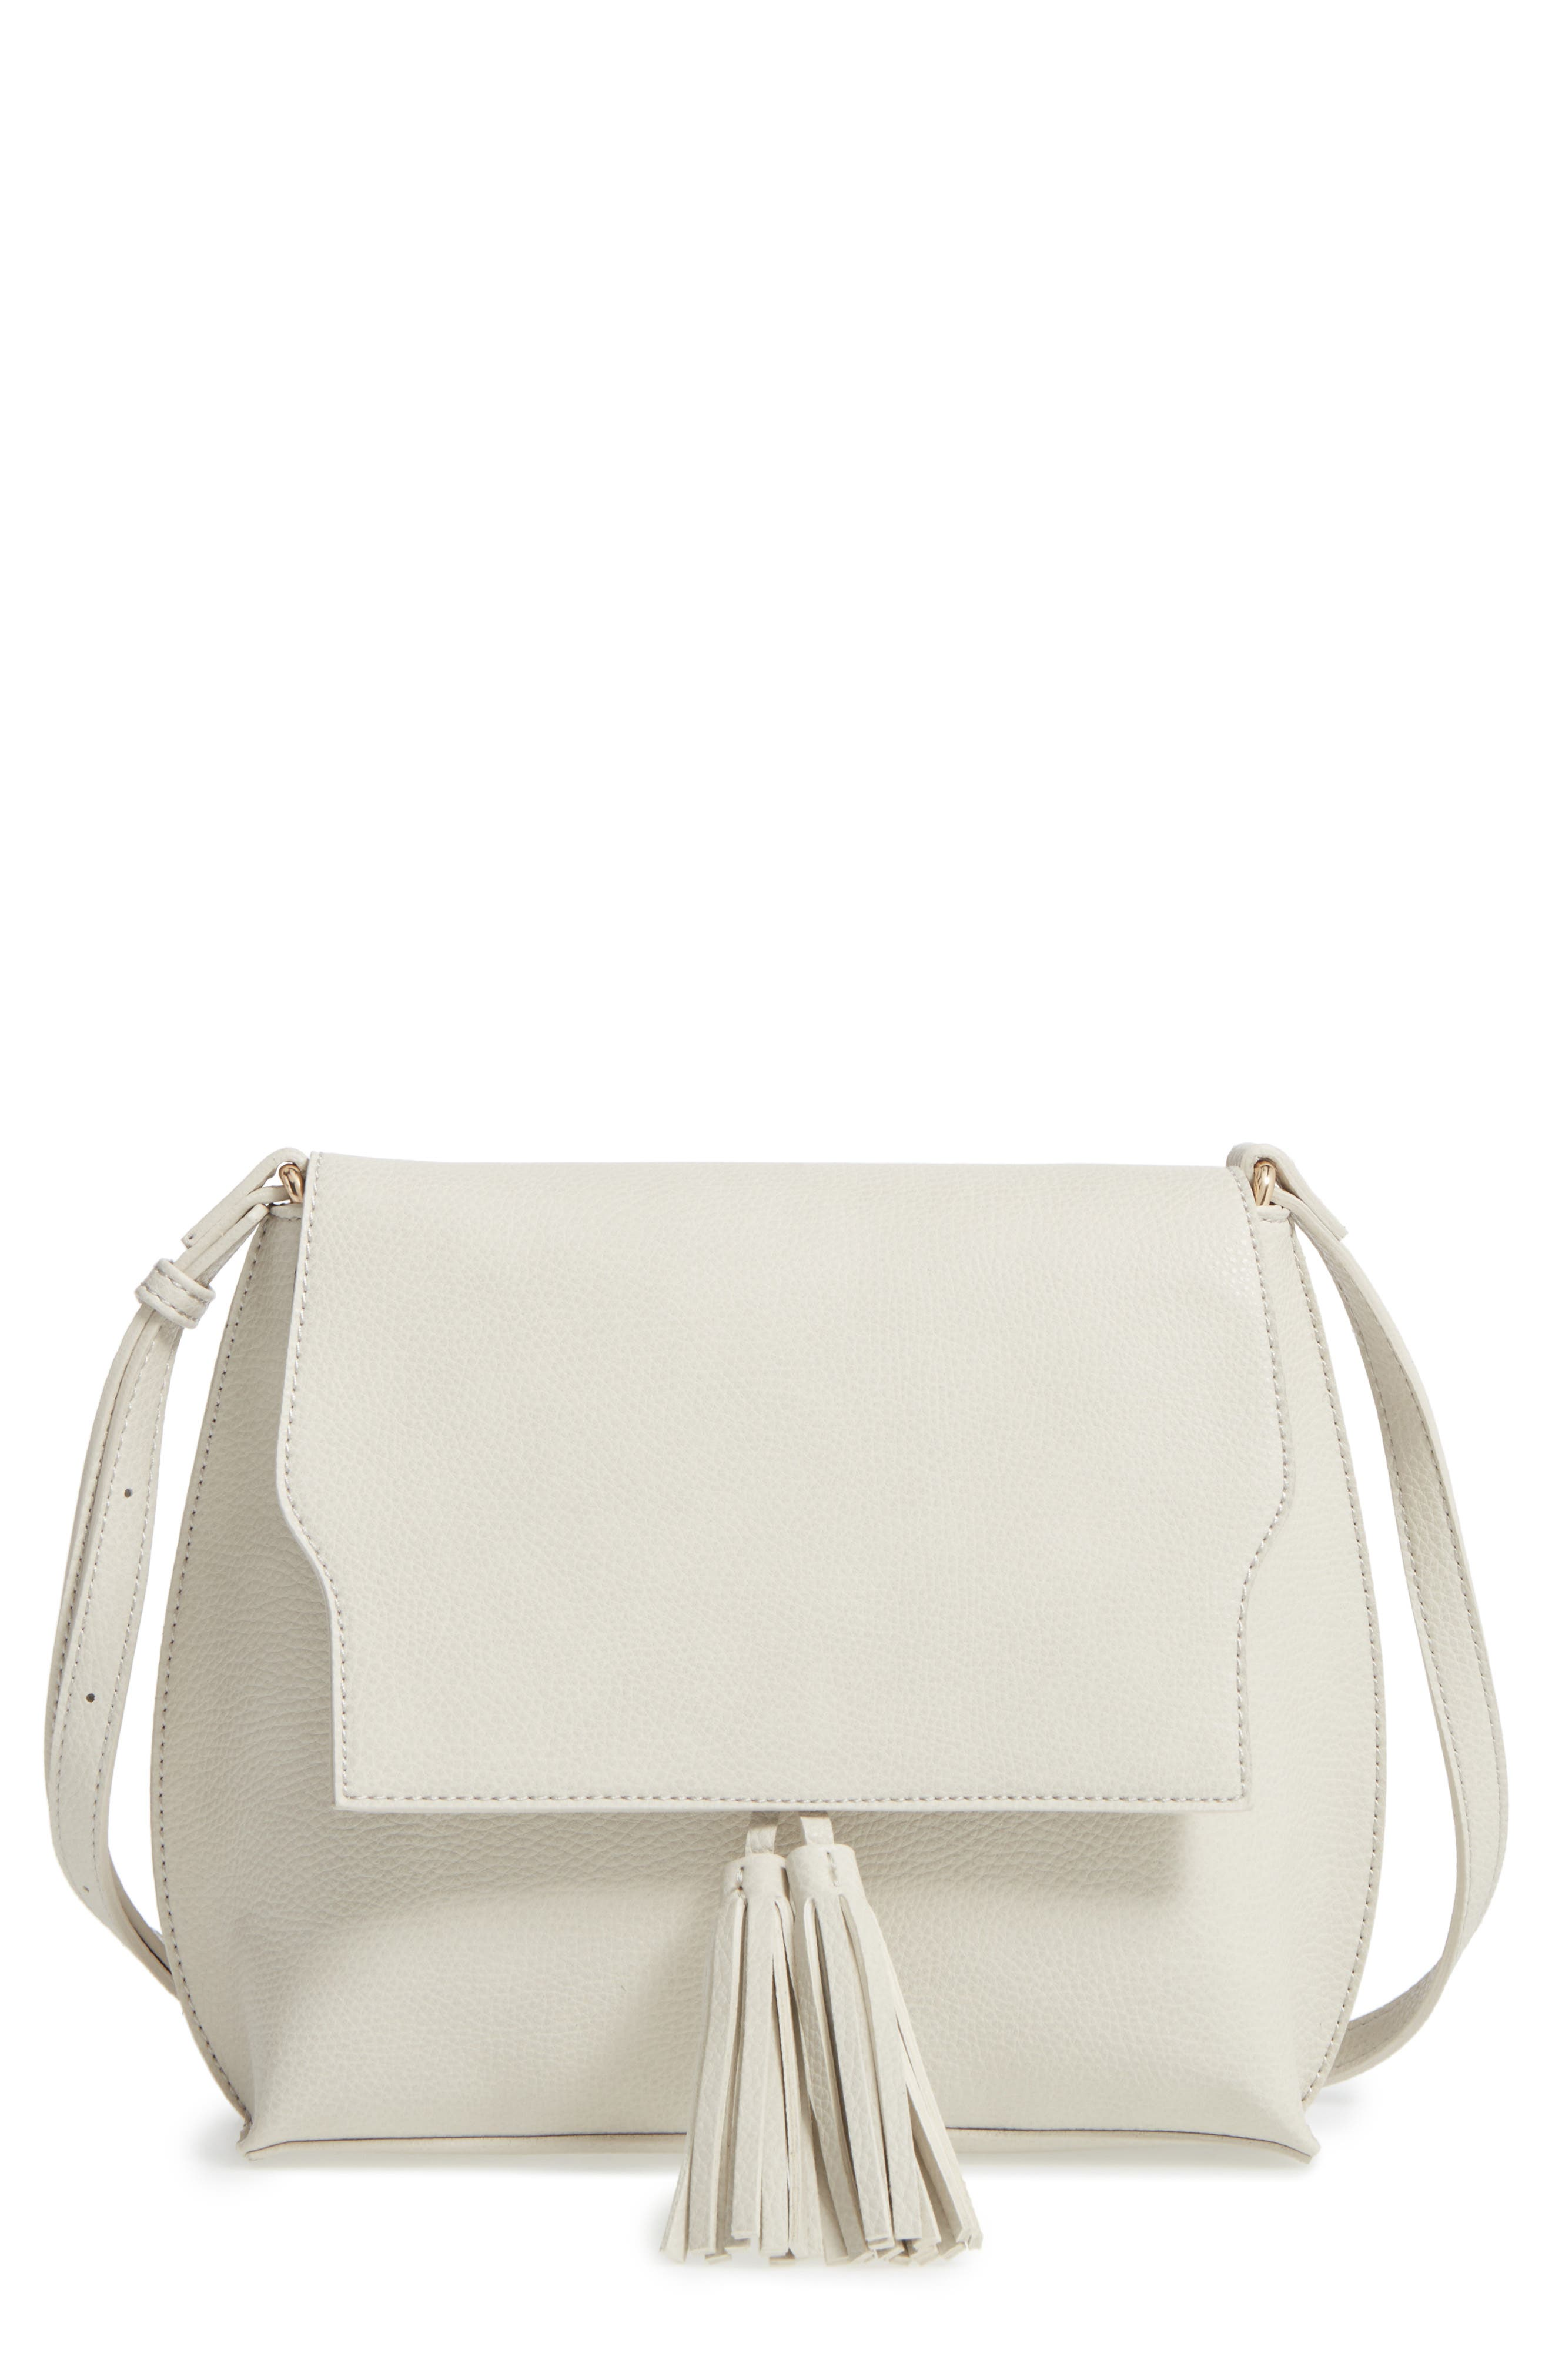 Alternate Image 1 Selected - Sole Society Tassel Faux Leather Crossbody Bag